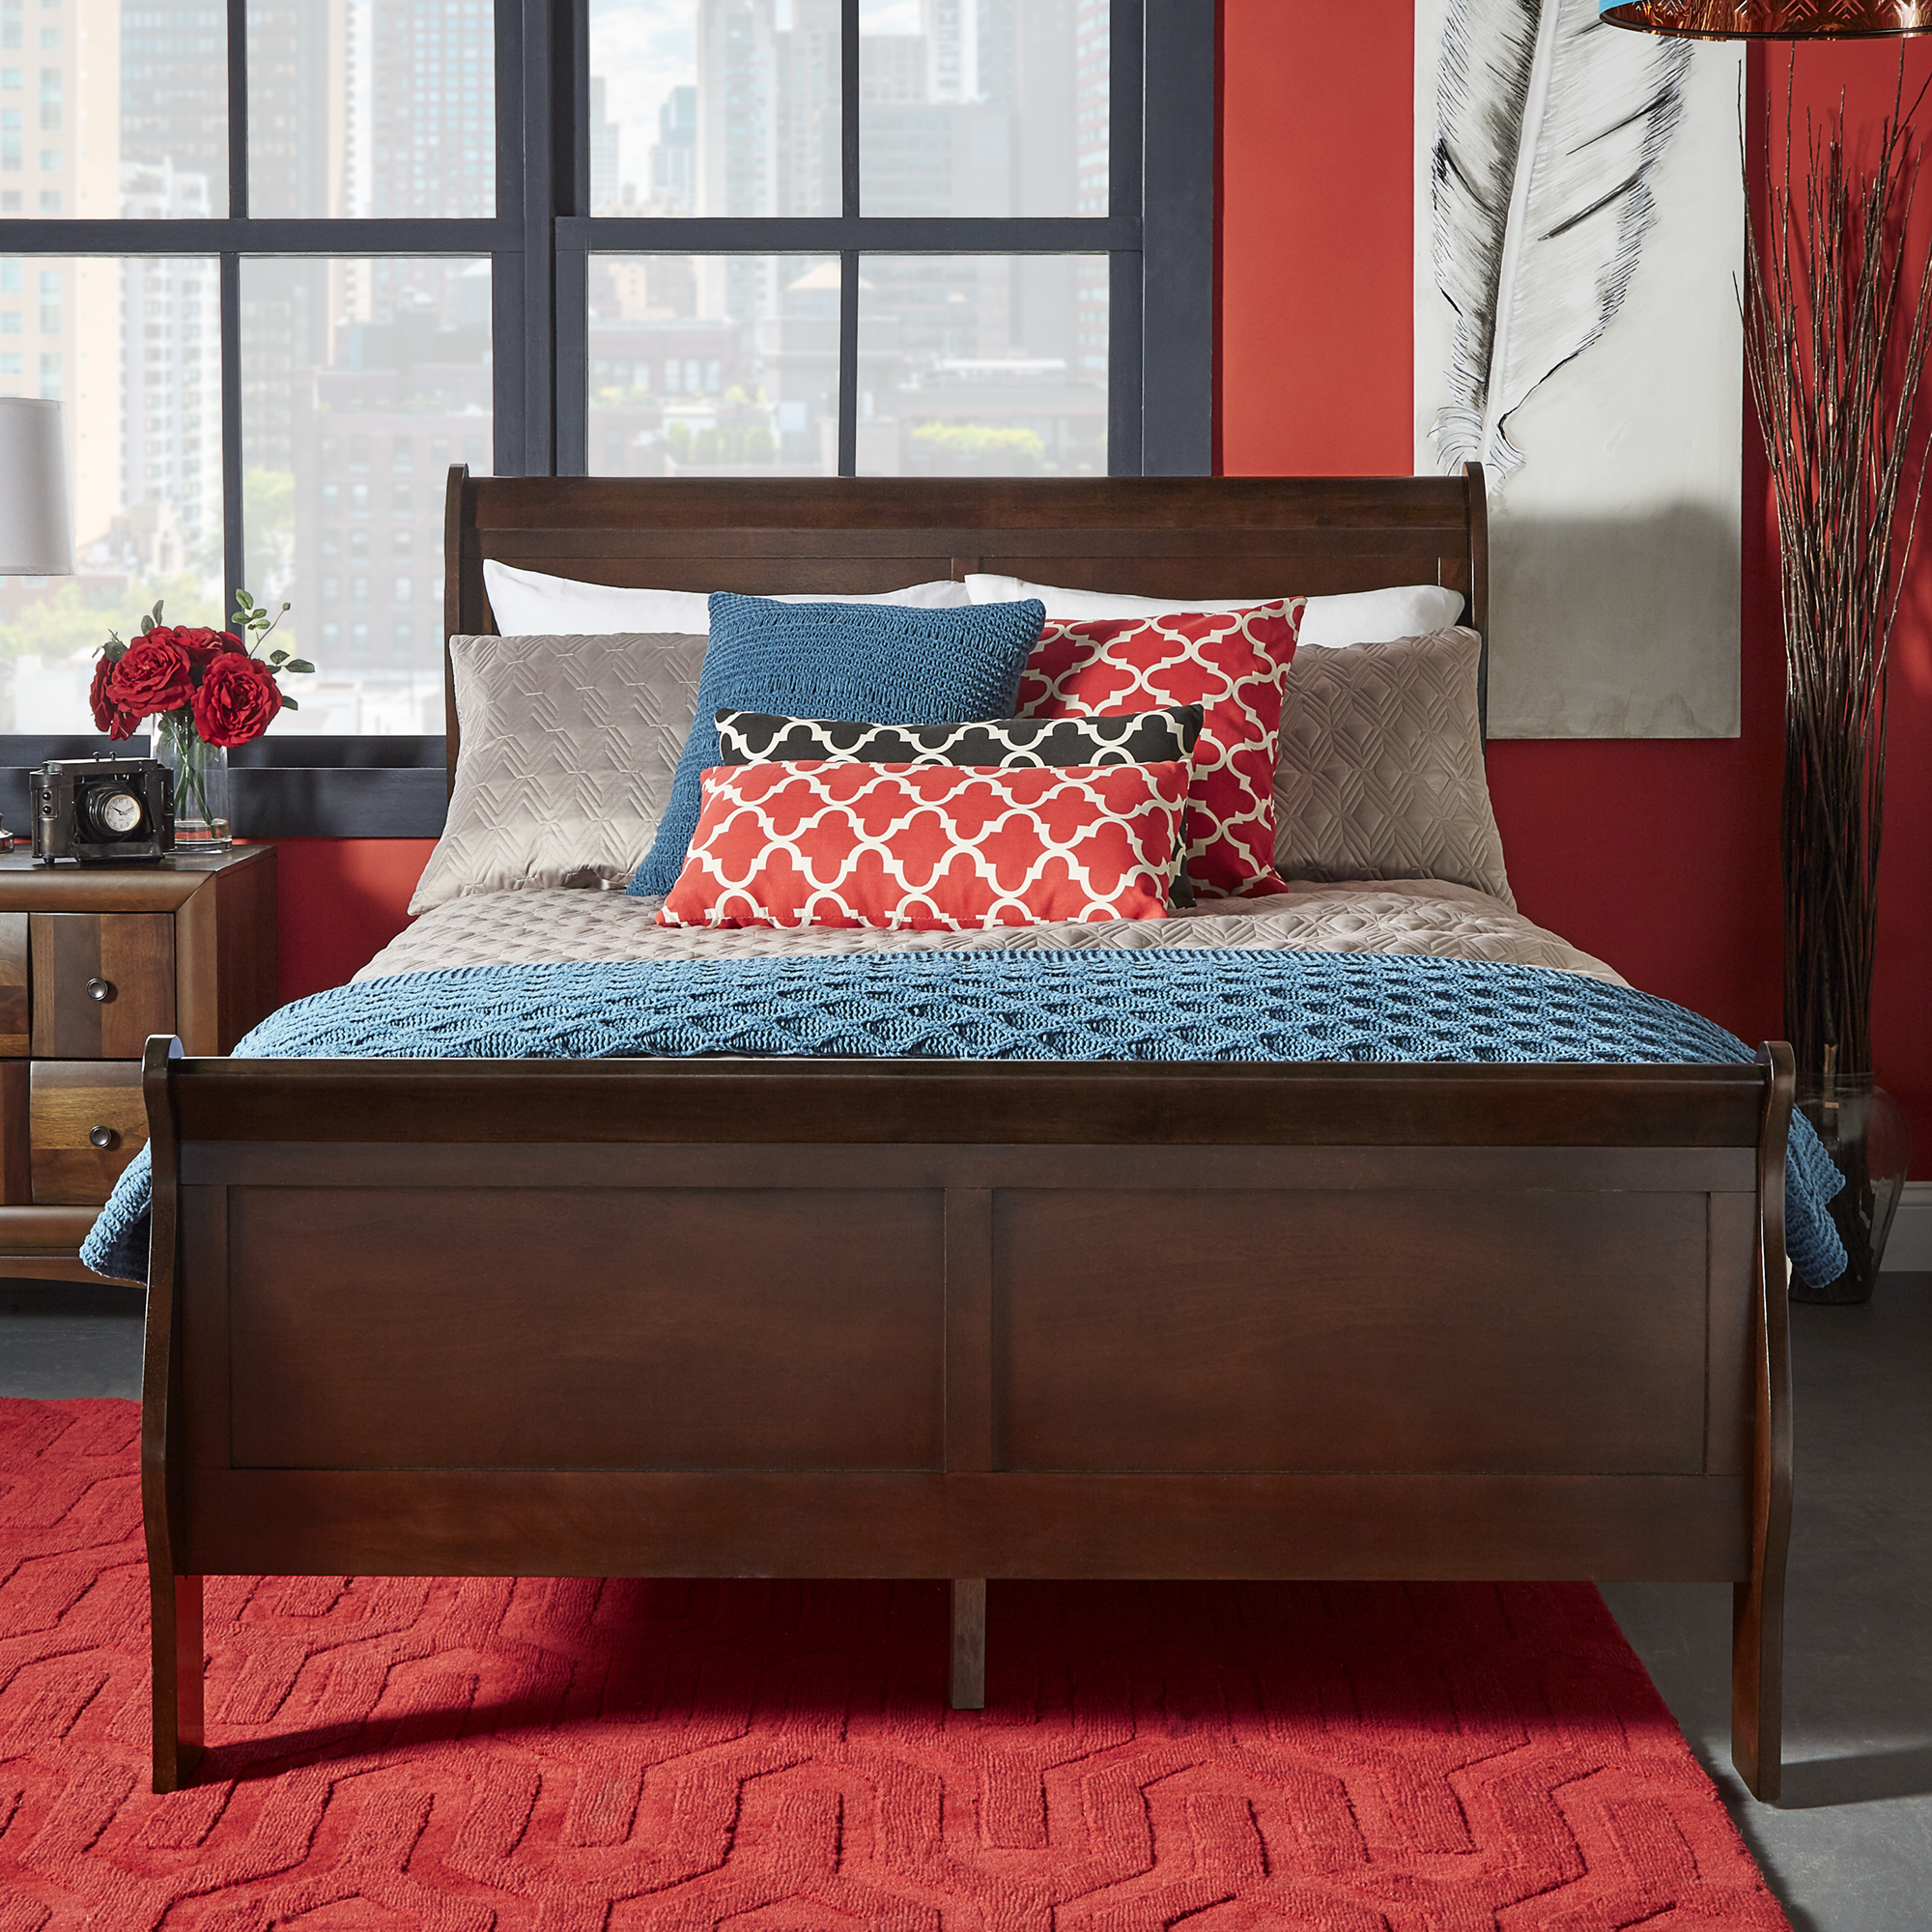 Weston Home Cherry Wood Finish Sleigh Bed Frame with High Footboard, Multiple Sizes by Weston Home